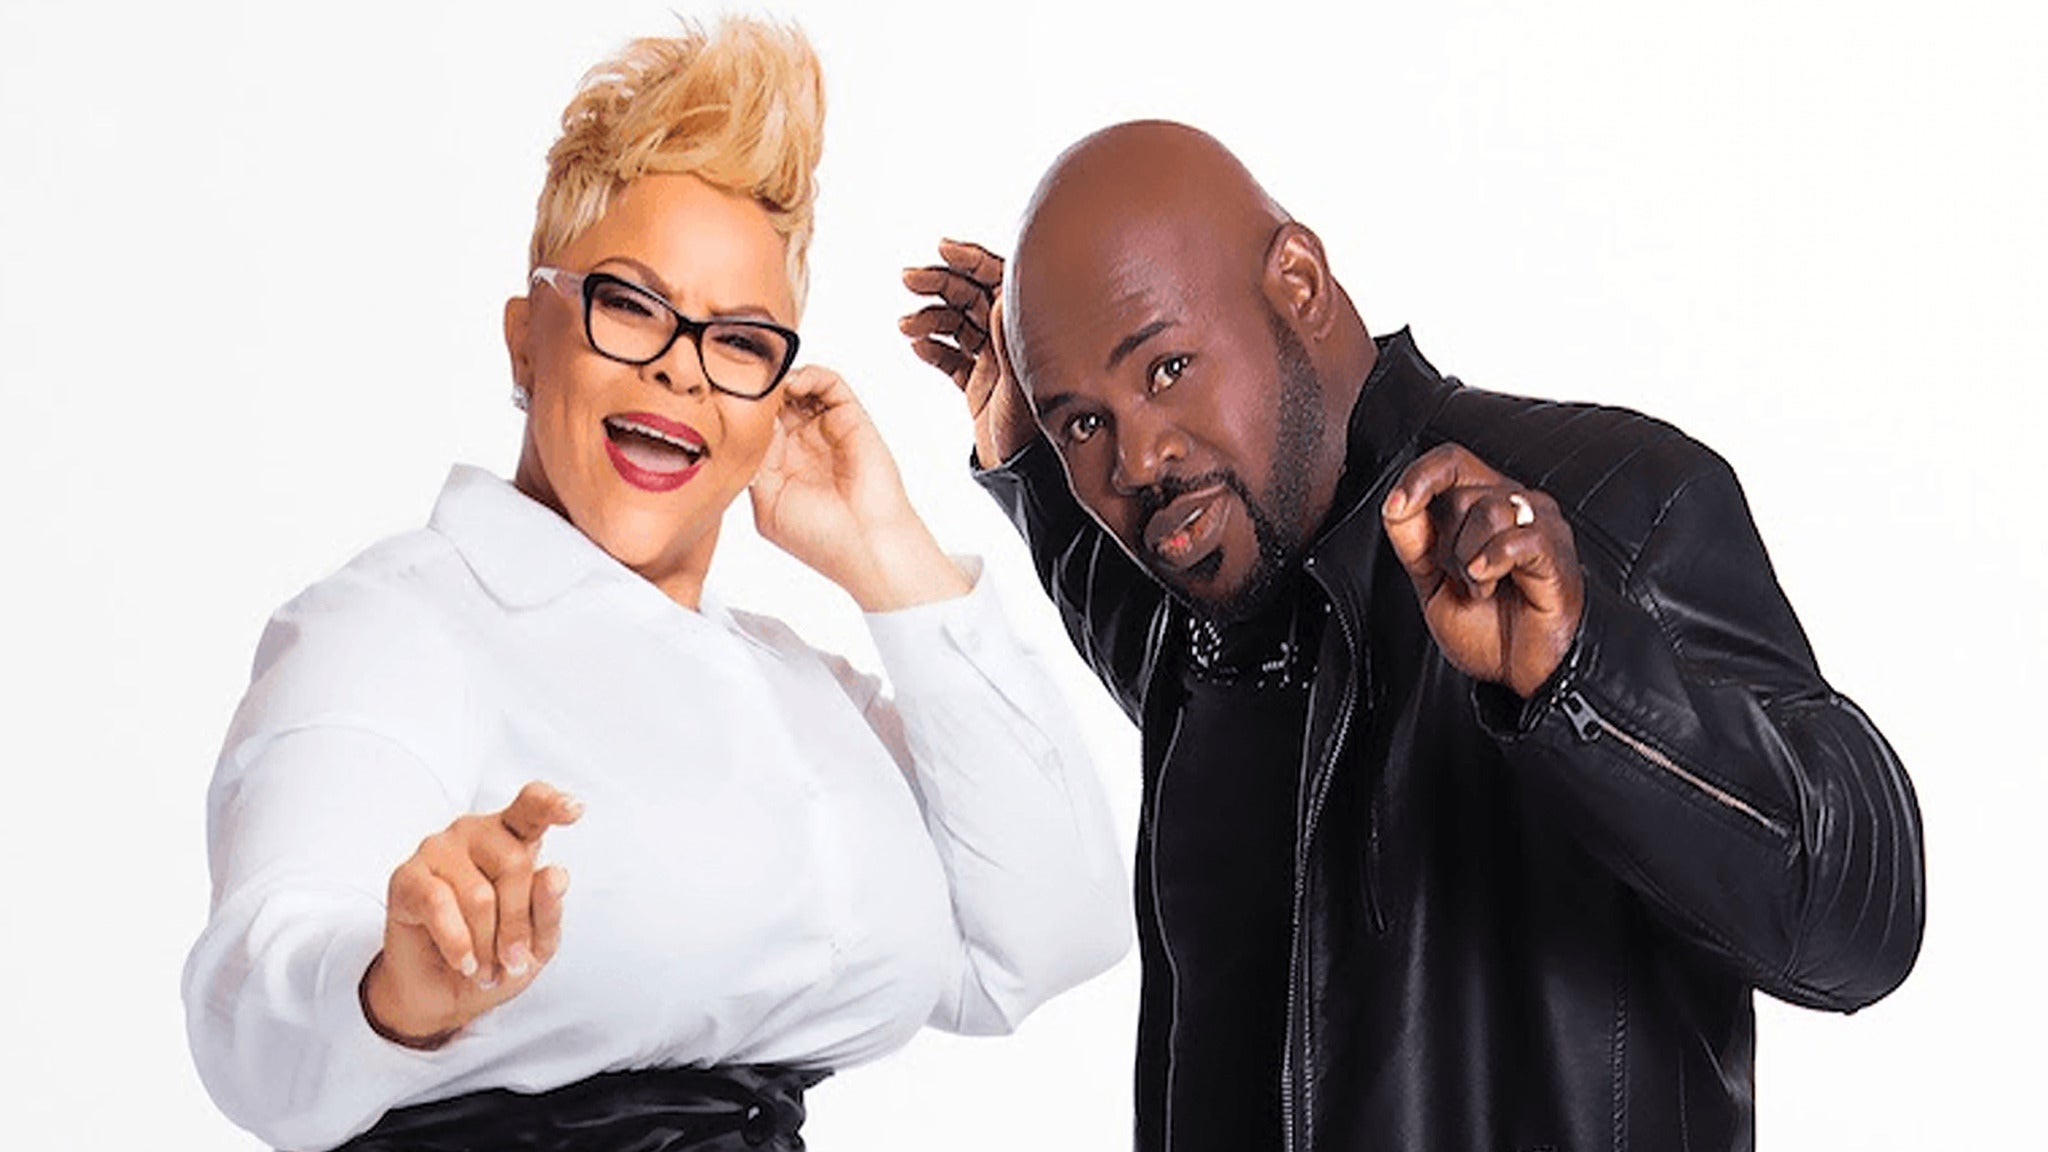 David Mann Tour Dates | David Mann Concert Tickets - Concertboom